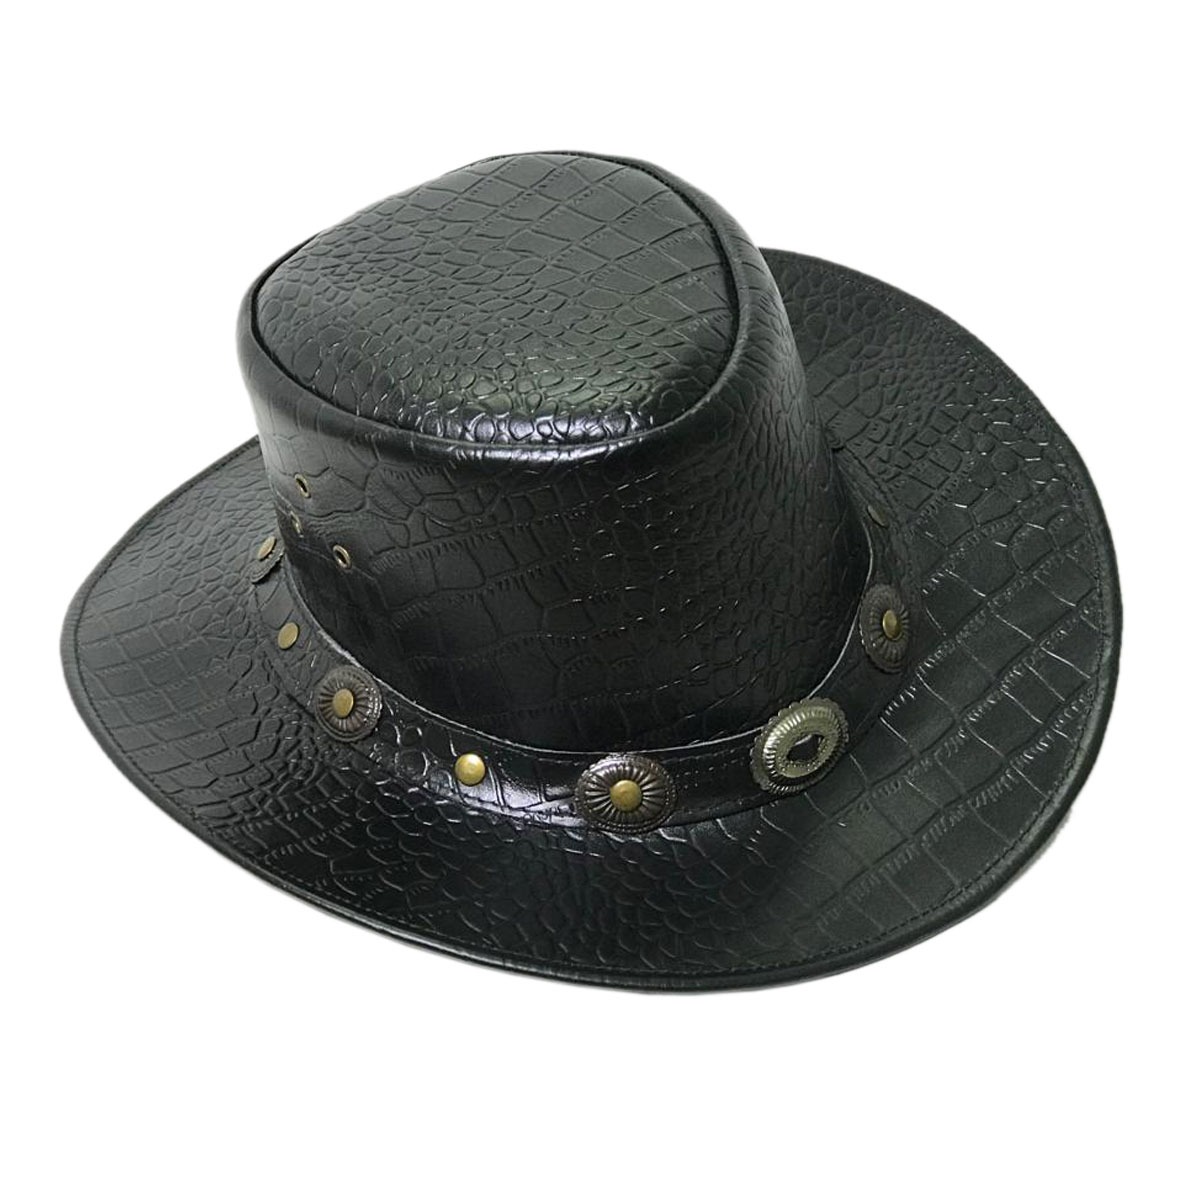 BLACK LEATHER HAT WITH METAL BUCKELS